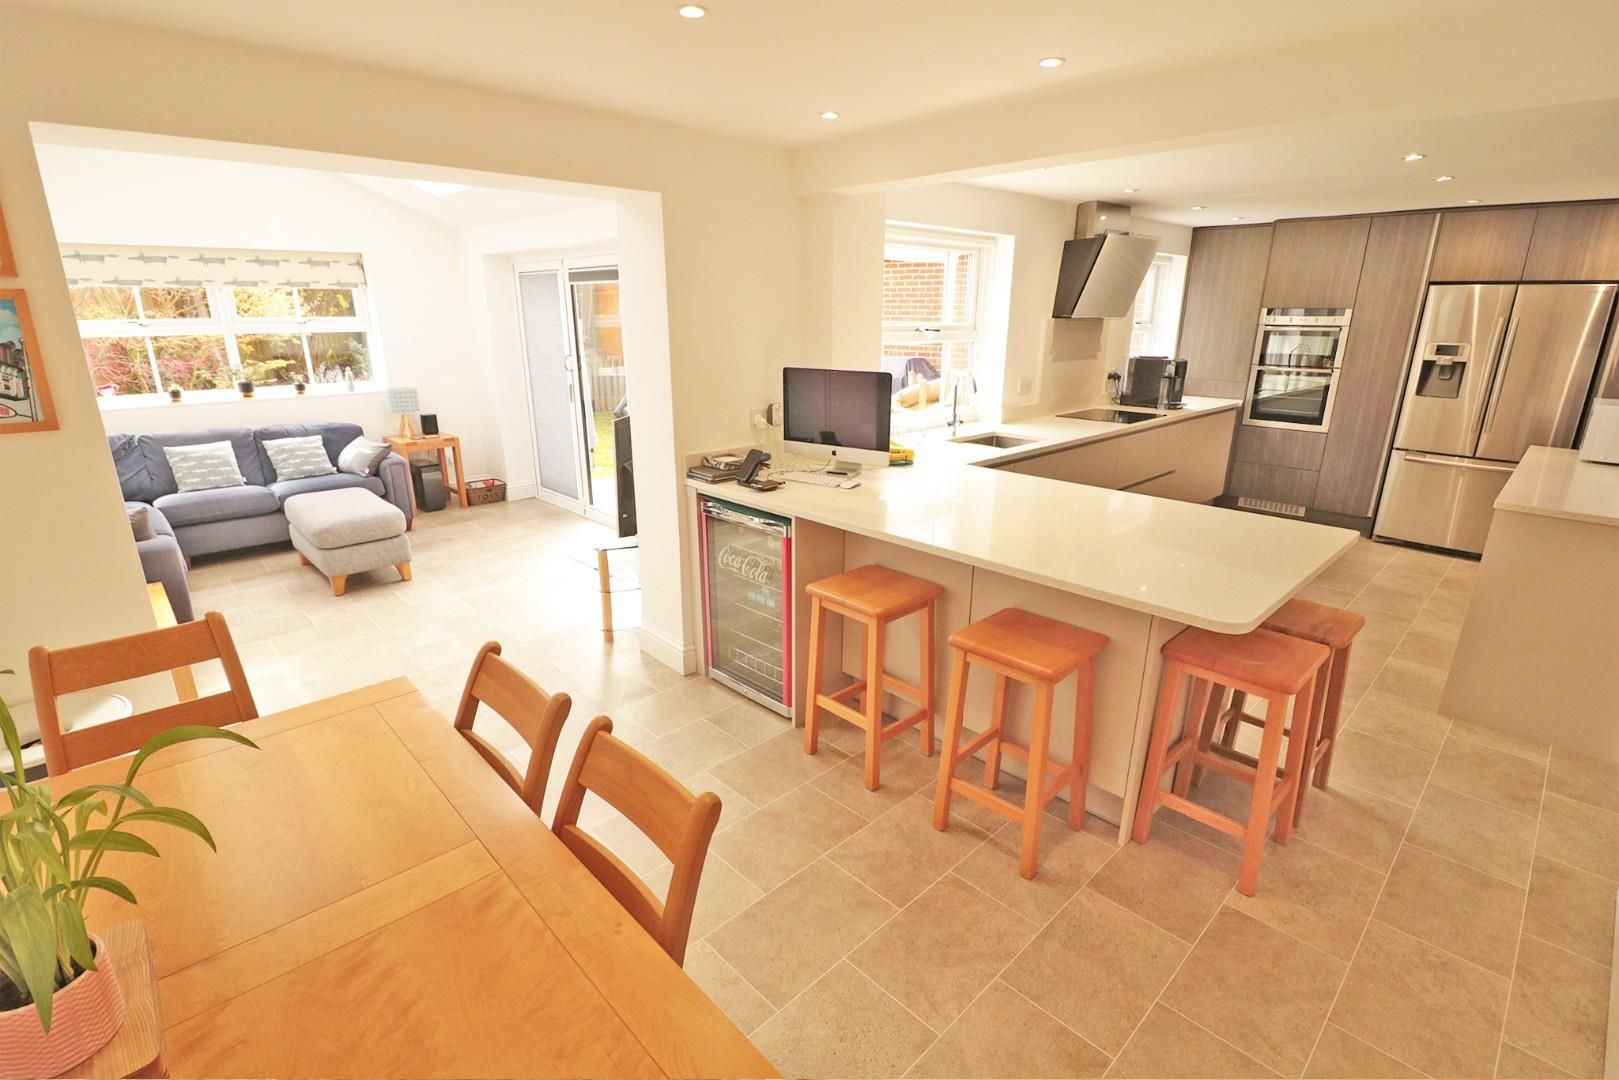 4 bed detached for sale in Binfield  - Property Image 2